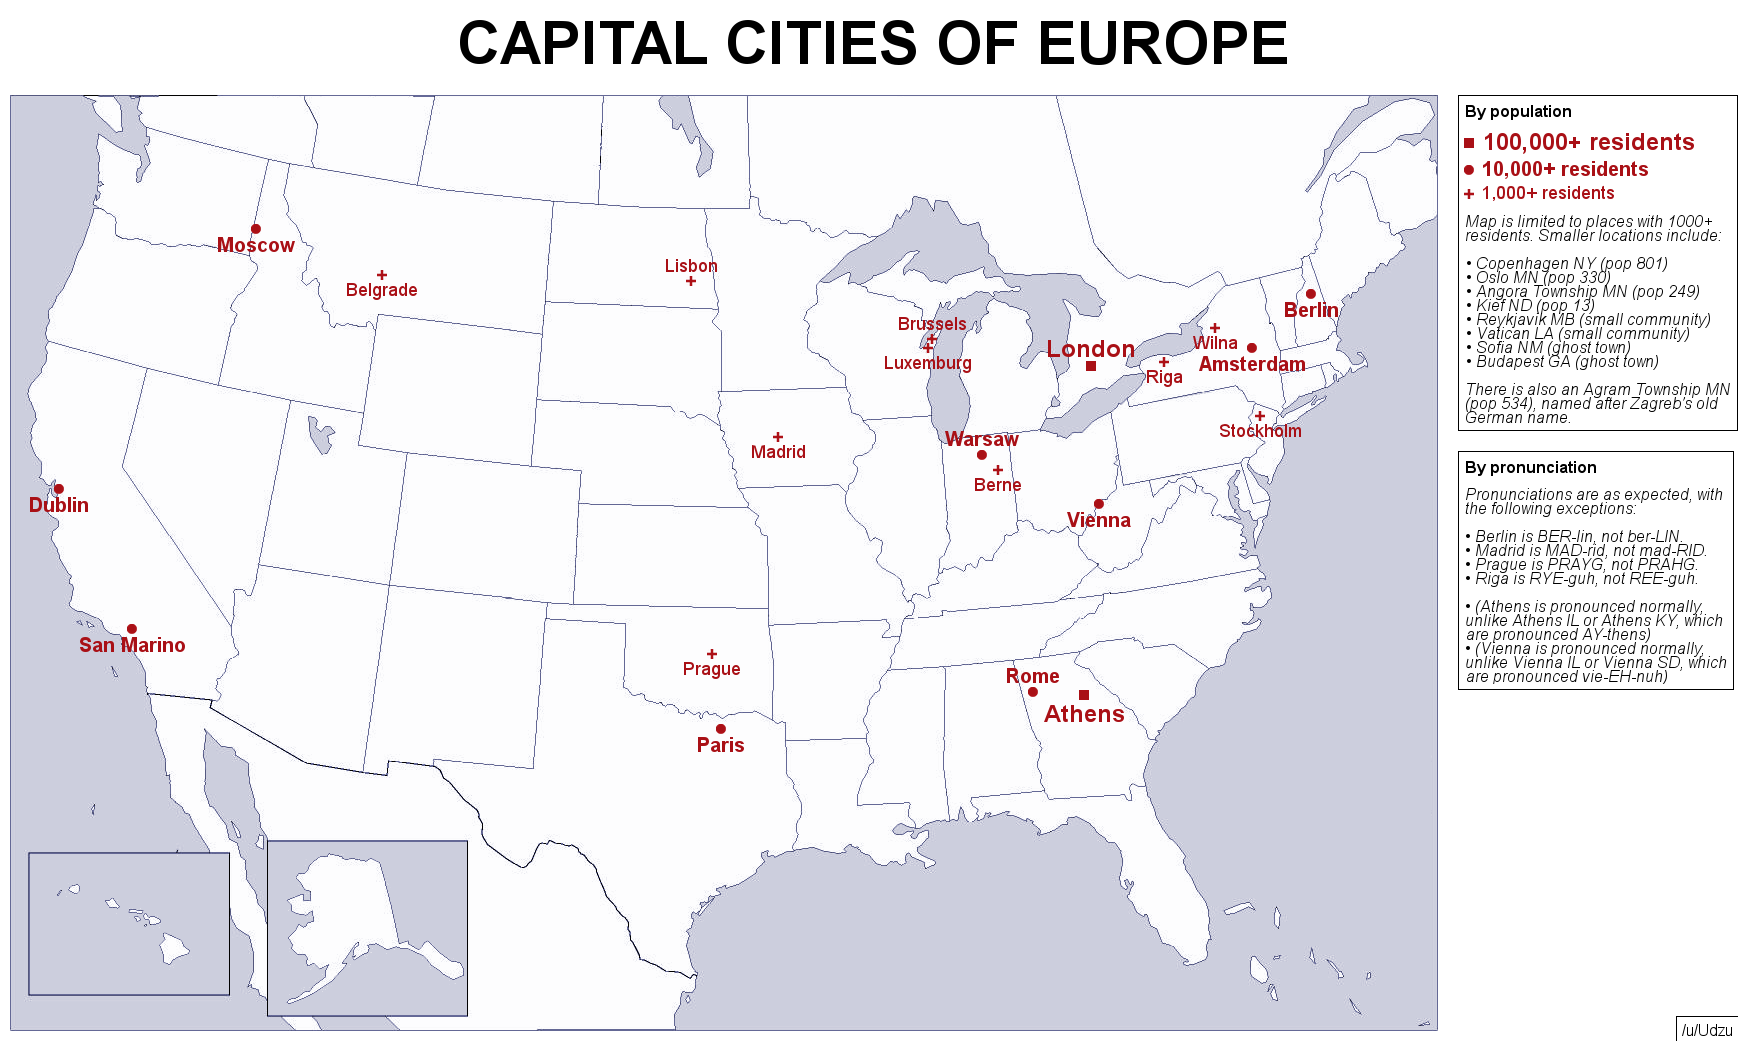 European Capital Cities (US Edition) - Earthly Mission